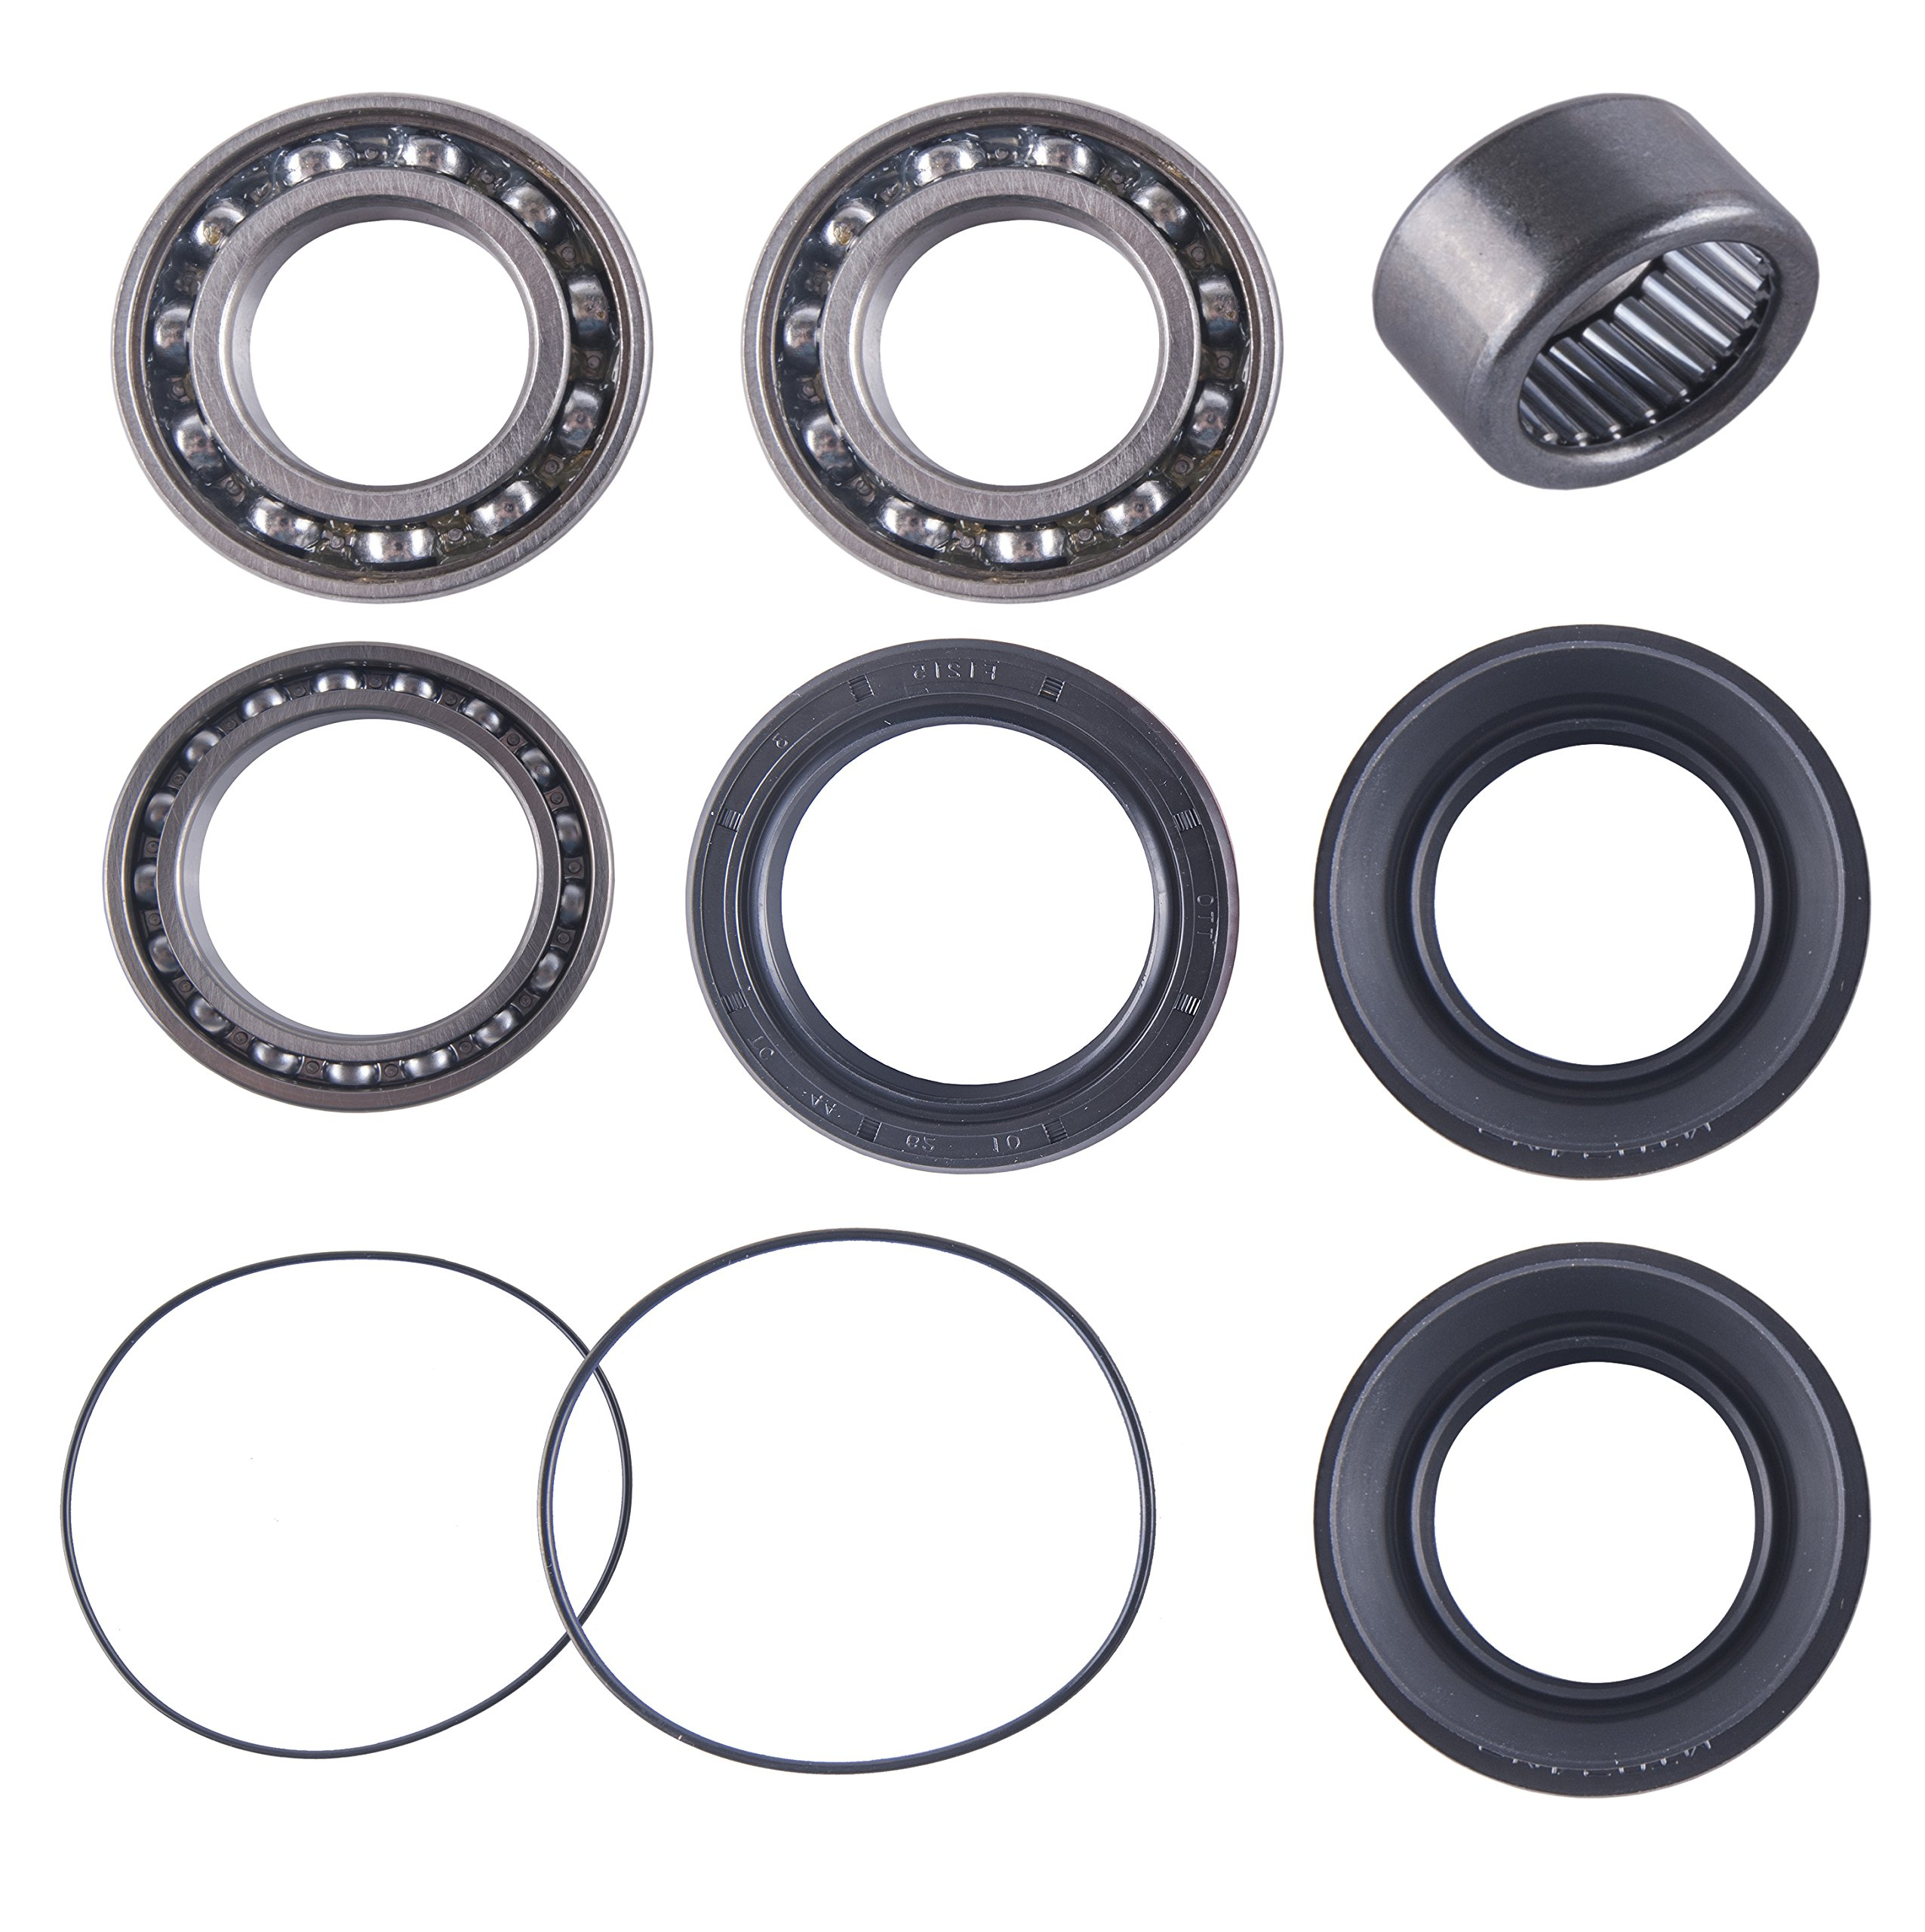 Yamaha 350/450 Grizzly front differential bearing & seal kit 2007 2008-2014 by East Lake Axle